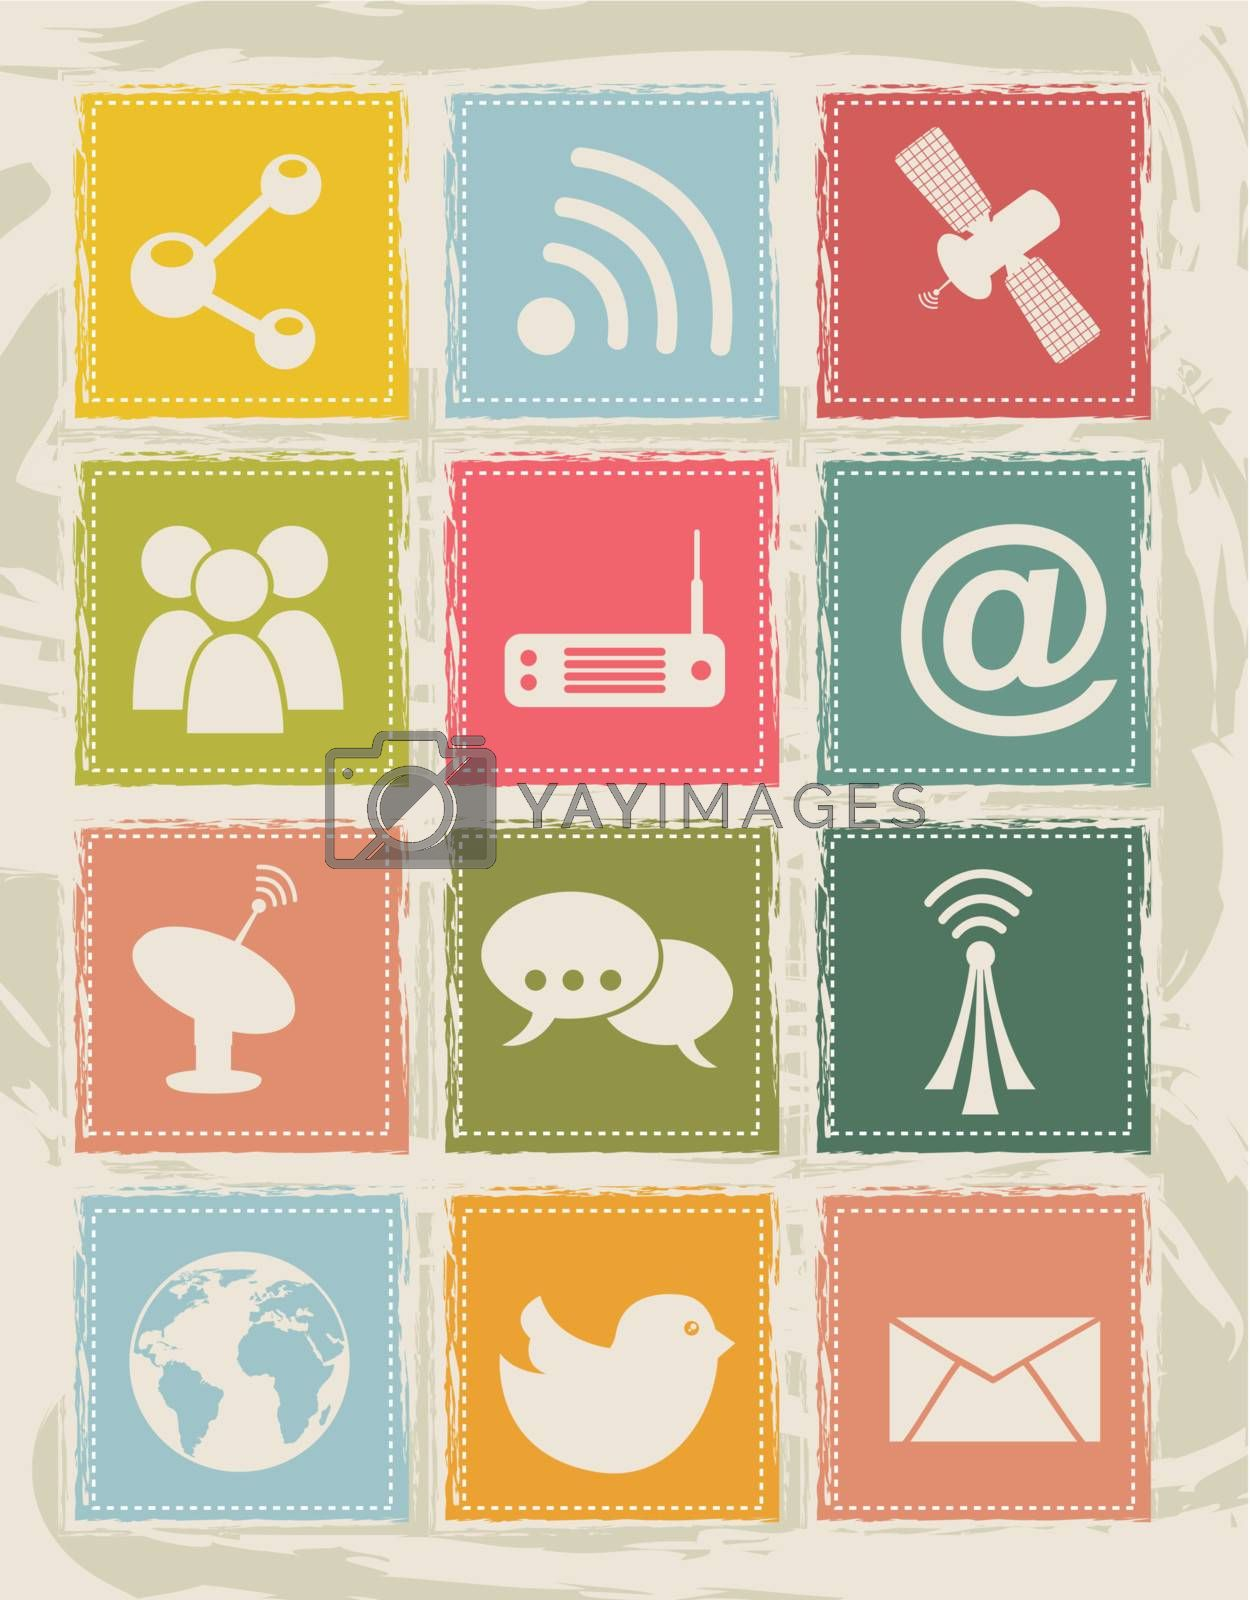 communication icons over grunge backgroud. vector illustration